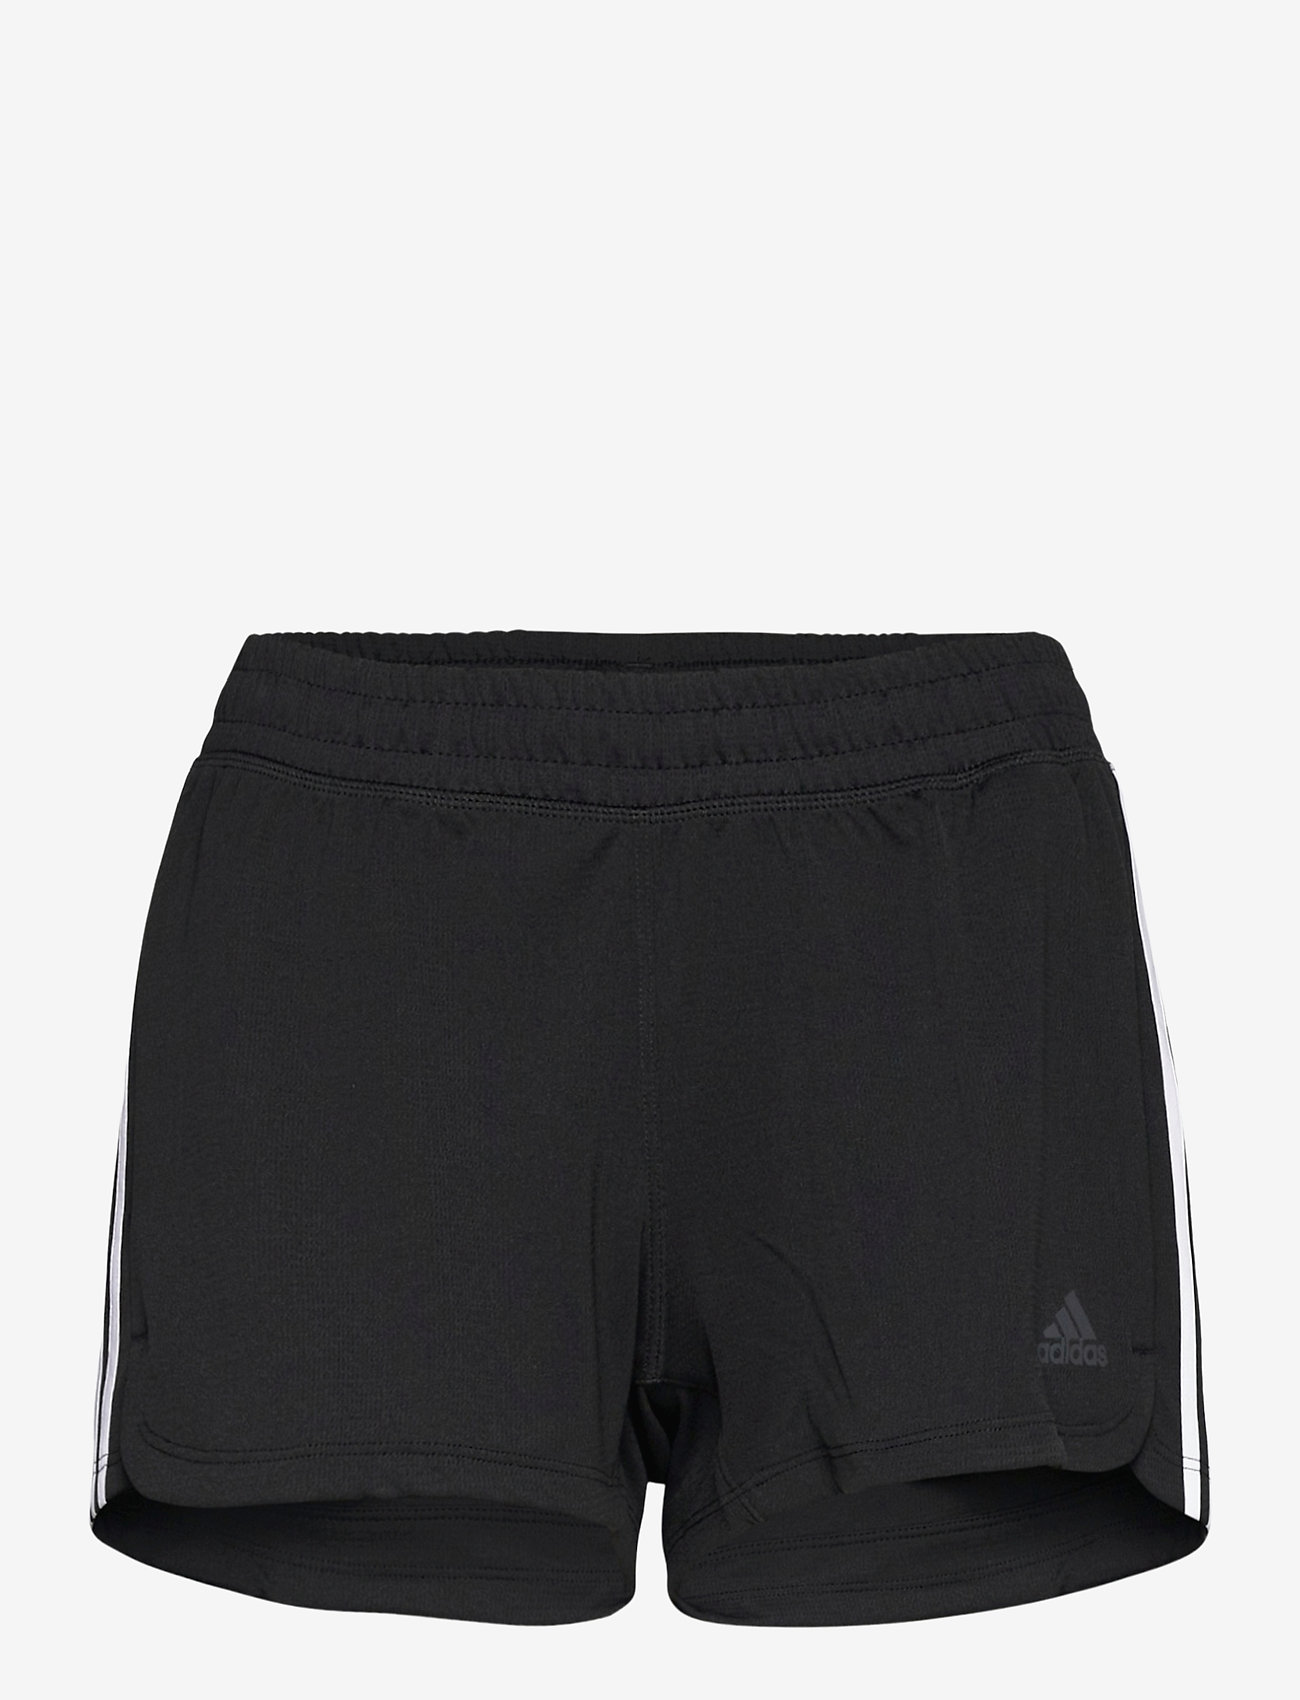 adidas Performance - Pacer 3-Stripes Knit Shorts W - træningsshorts - black/white - 1